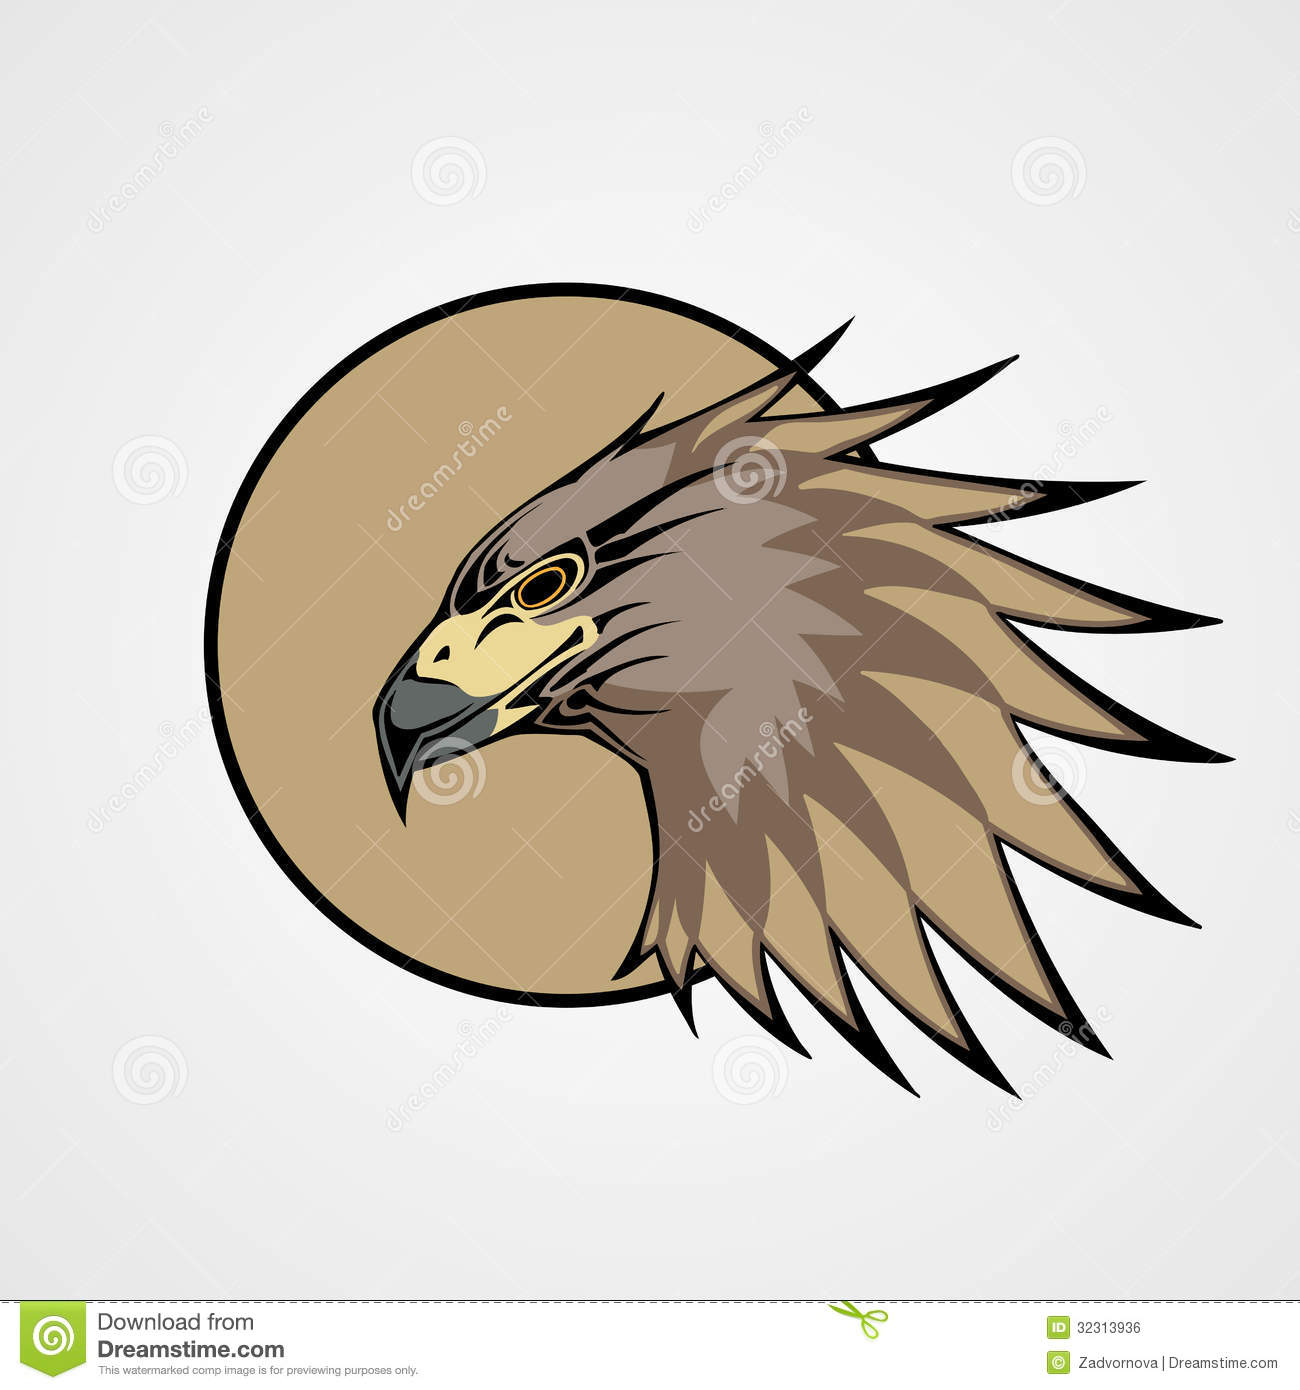 Hawk Royalty Free Stock Image - Image: 32313936